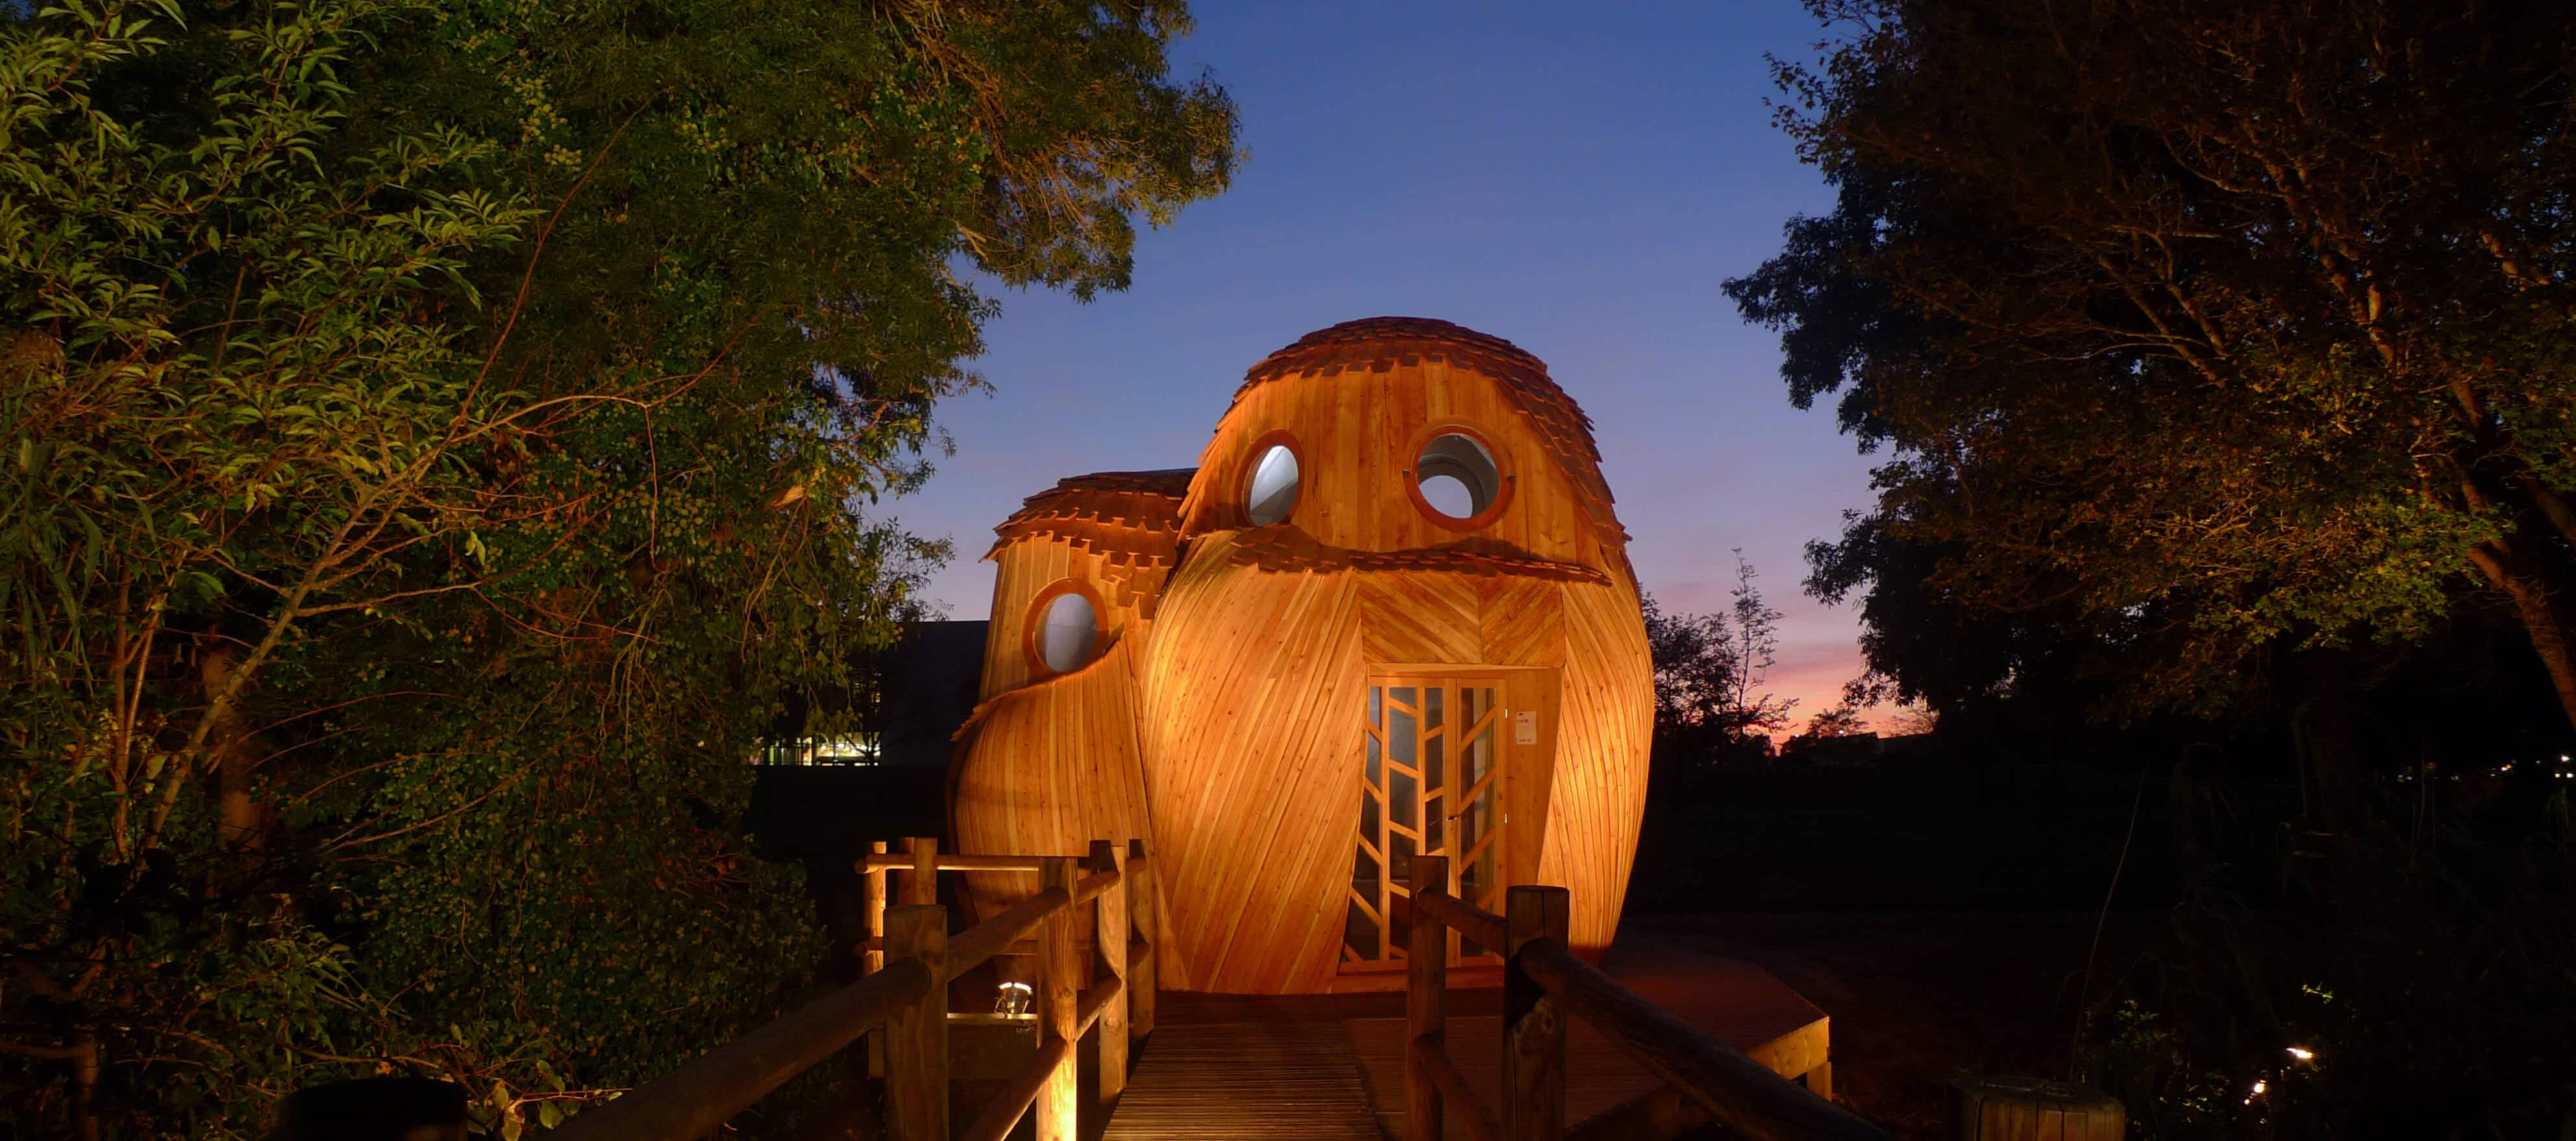 On a budget? You can stay in these amazing owl cabins in Bordeaux for free